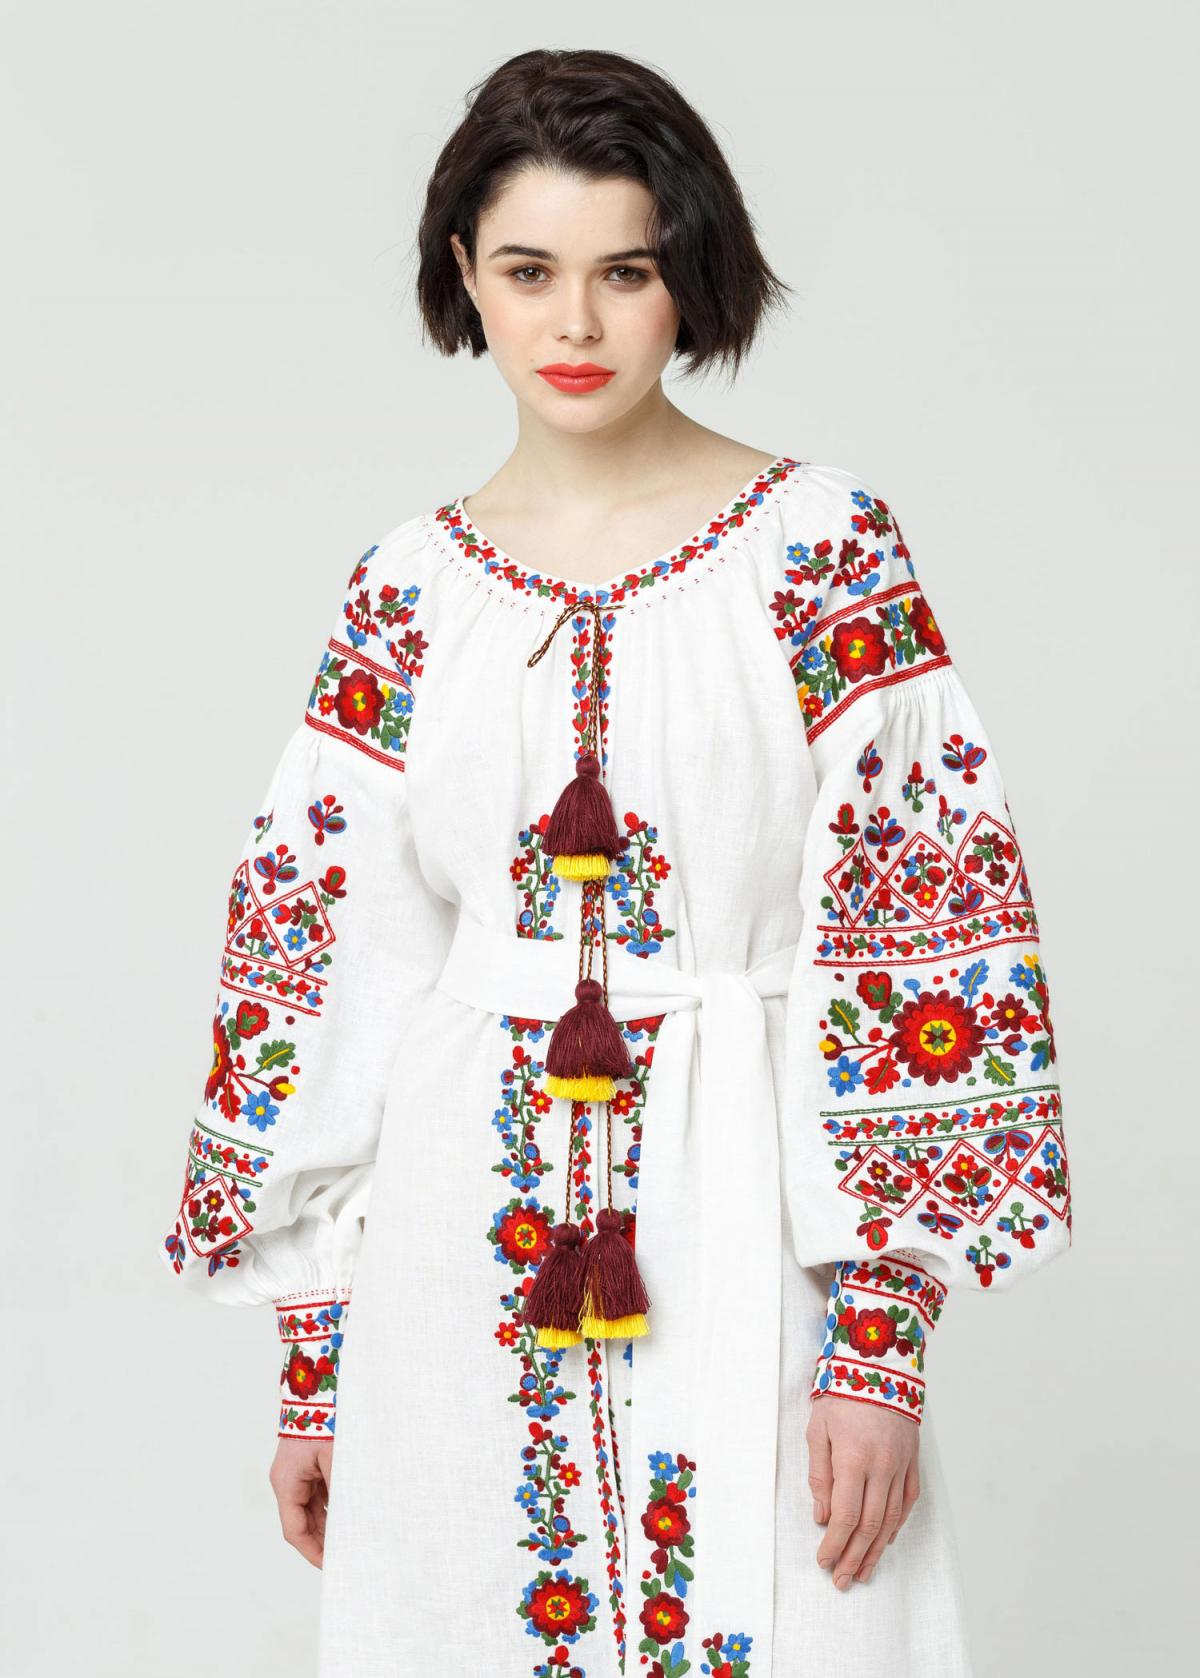 Long white embroidered dress with embroidery flowers,  Limited Edition. Photo №5. | Narodnyi dim Ukraine